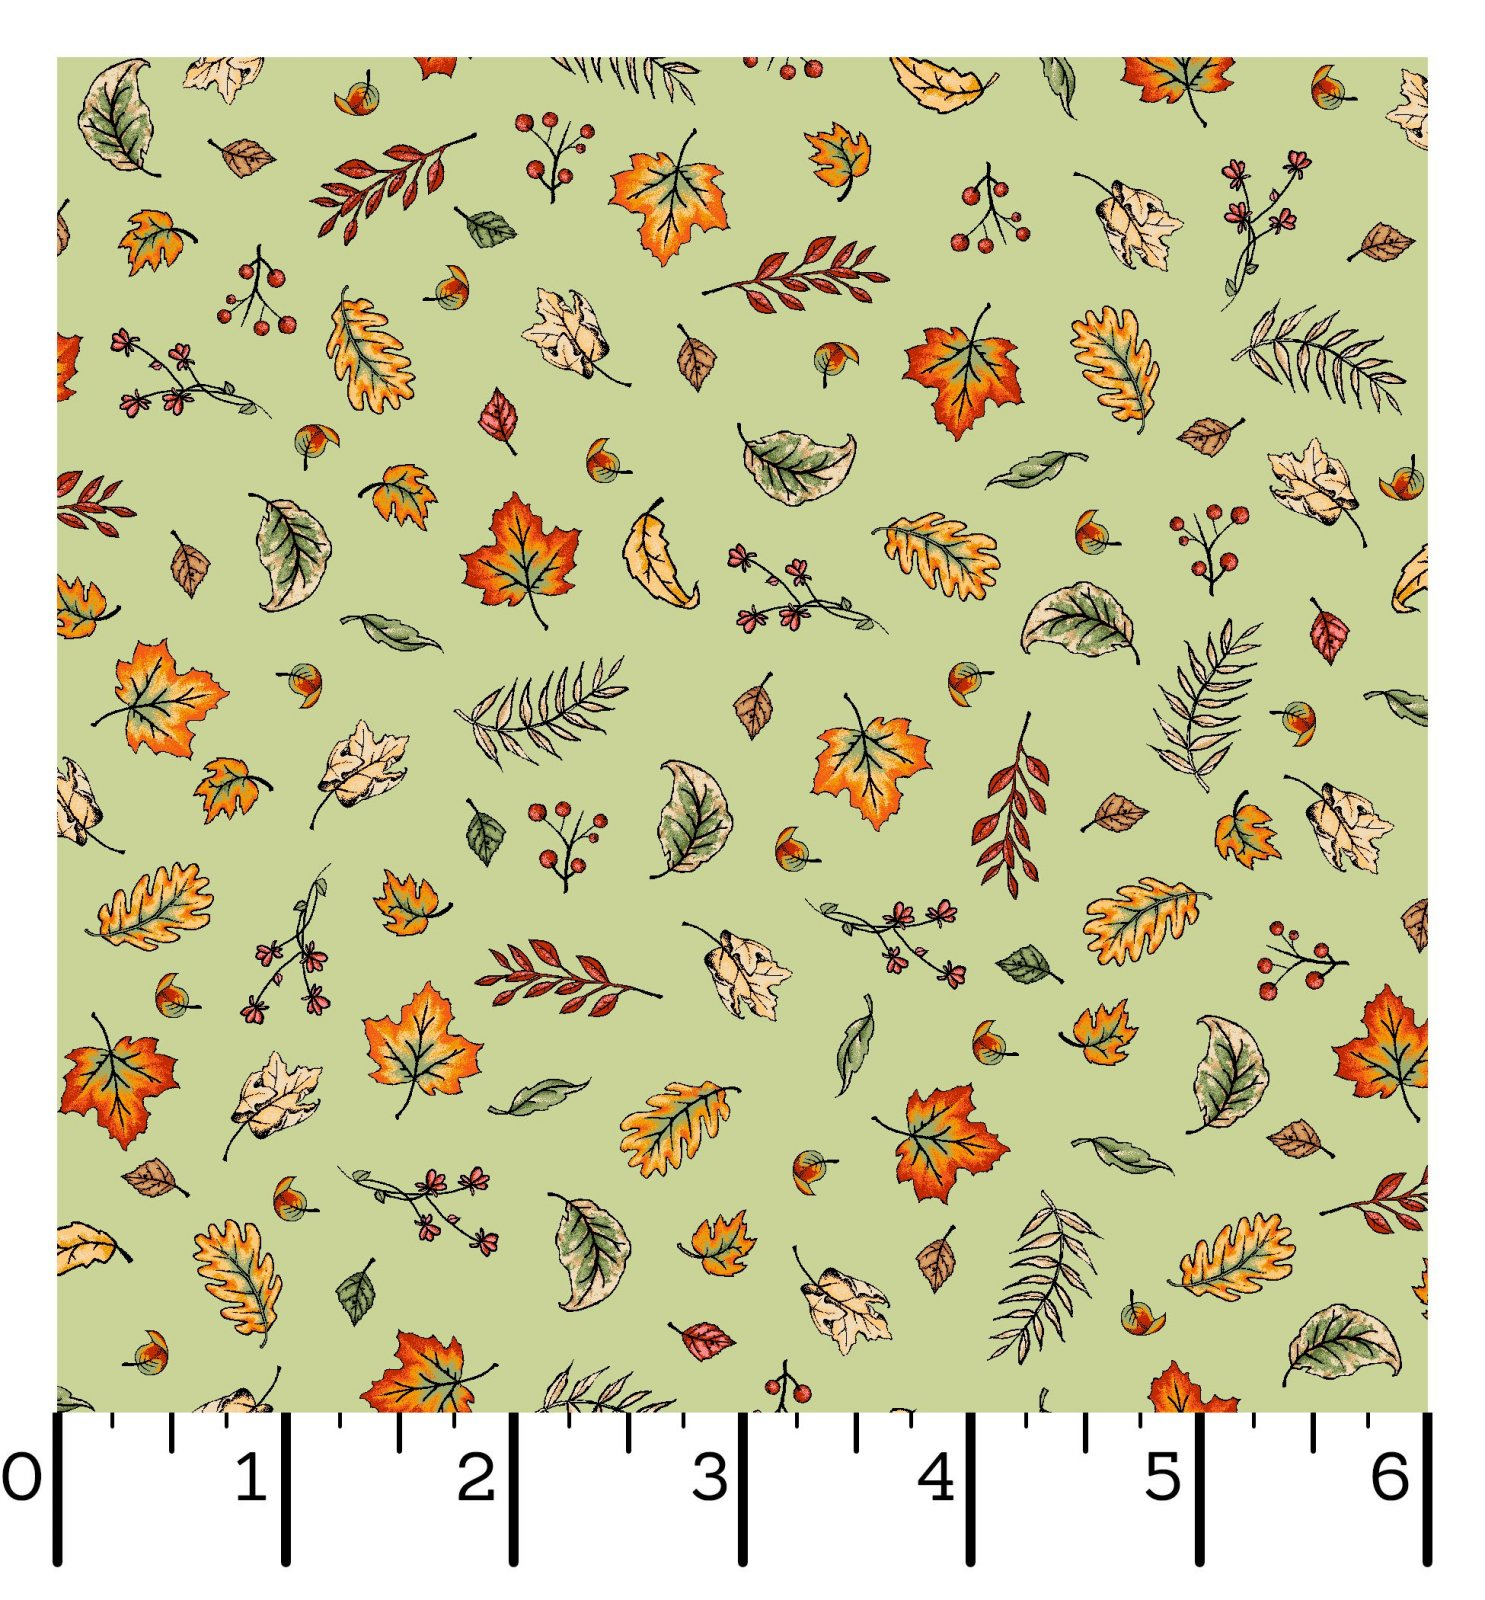 EESC-10035 G - SWEATER WEATHER BY KRIS LAMMERS BLOWING LEAVES GREEN - ARRIVING IN JULY 2021